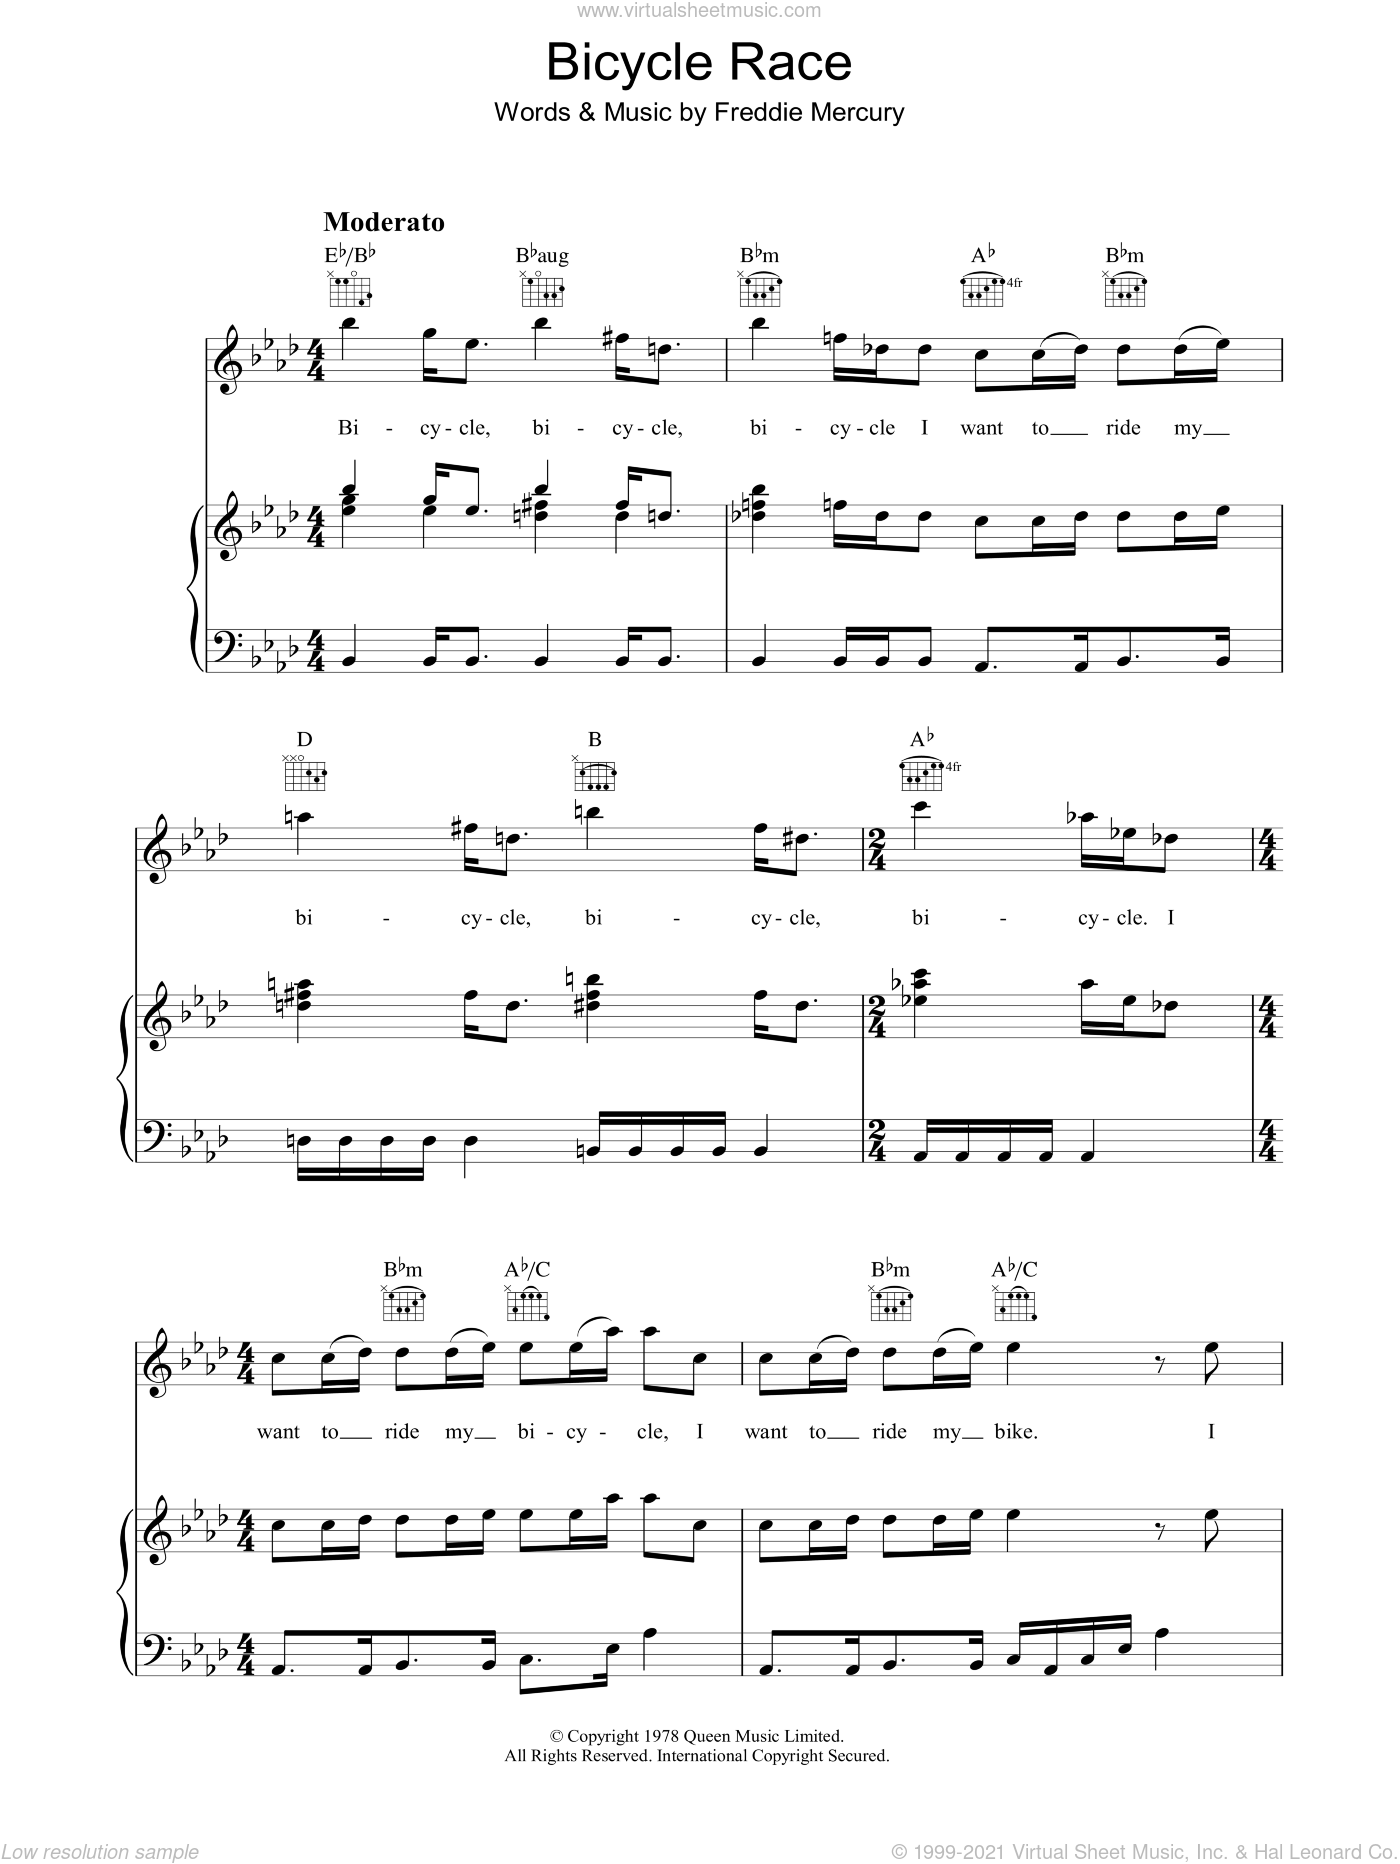 Bicycle Race sheet music for voice, piano or guitar by Freddie Mercury